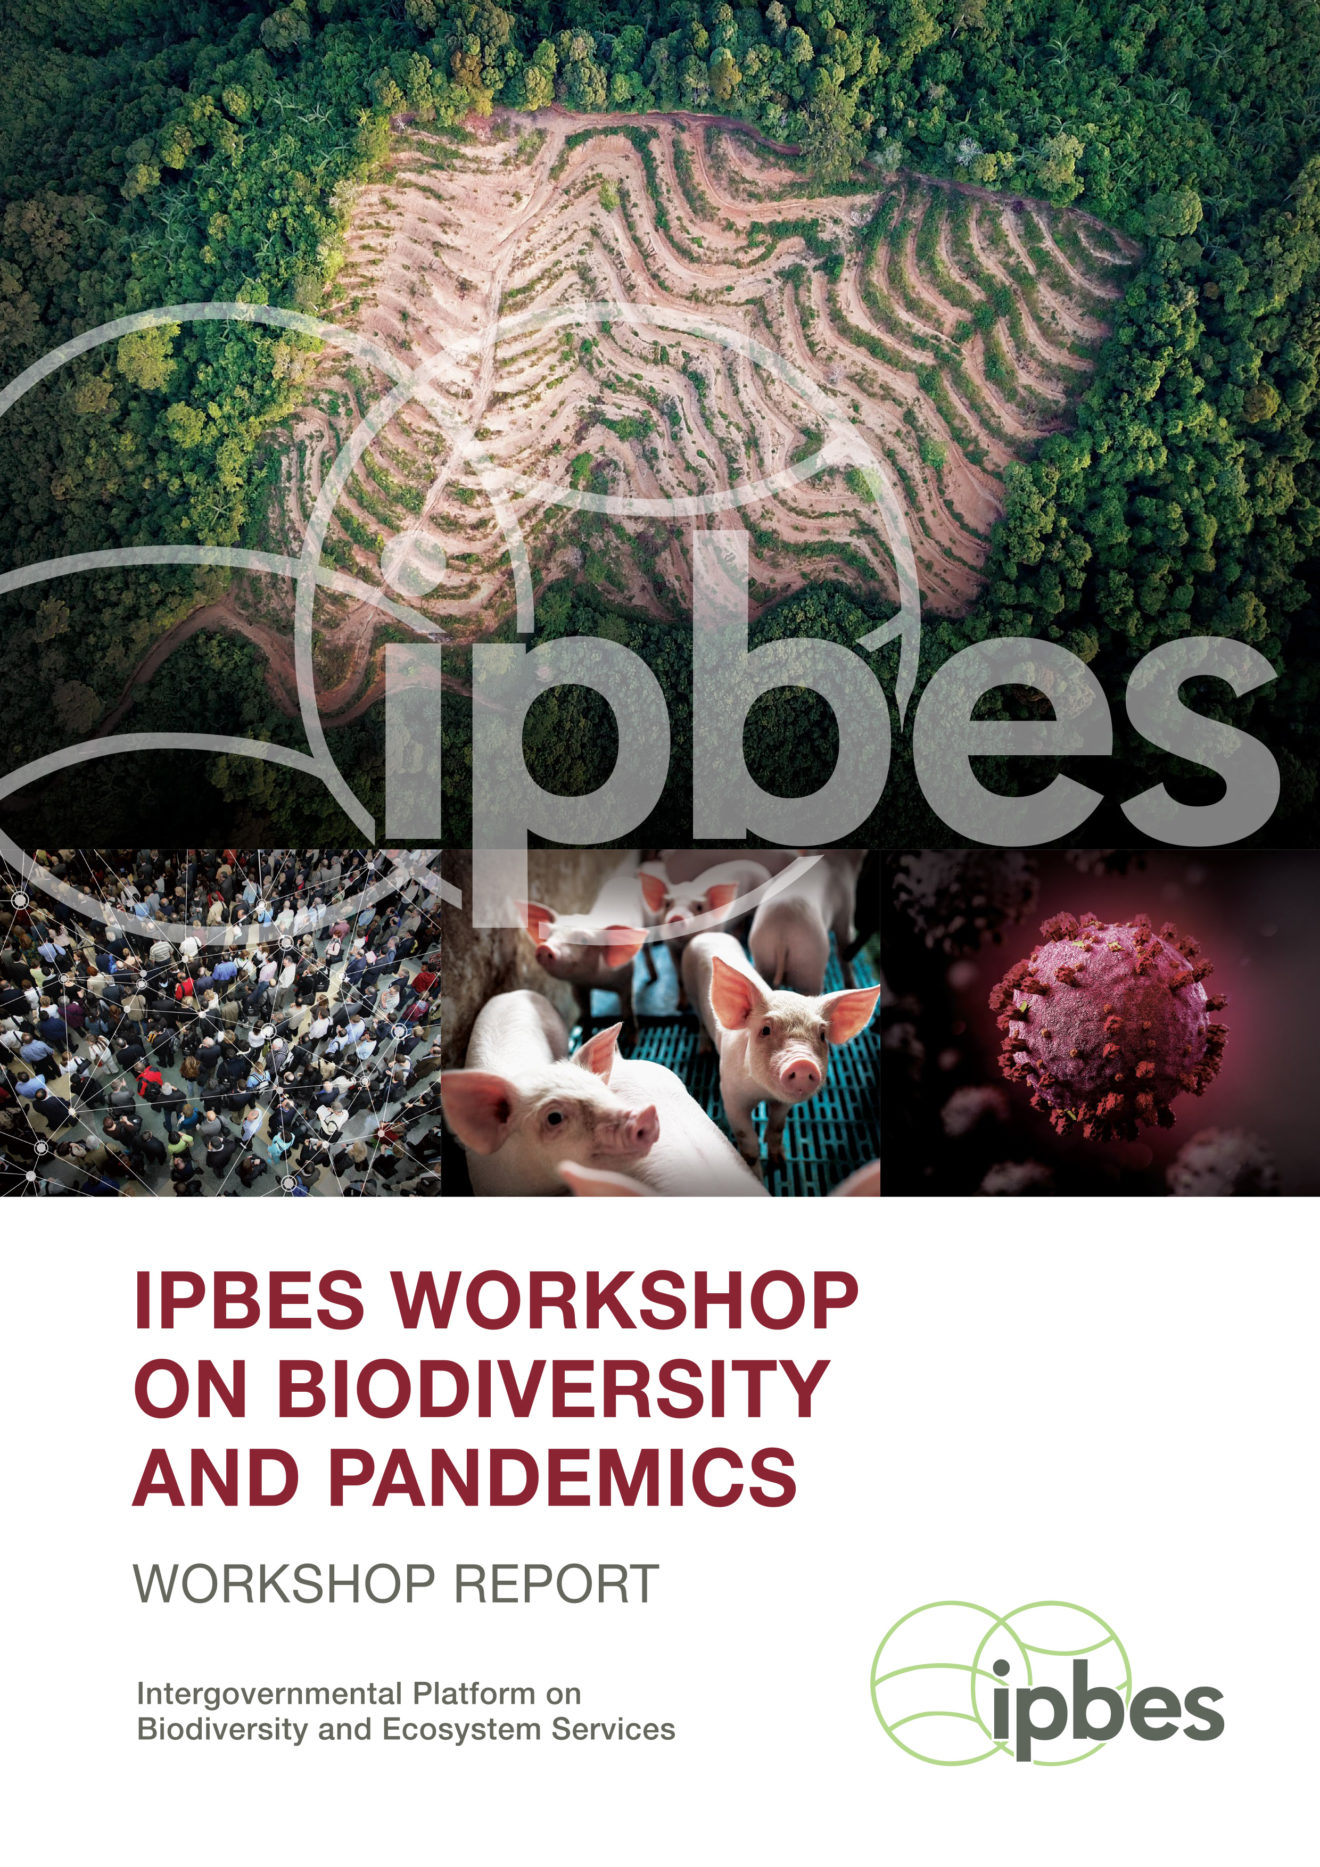 201026_IPBES_Pandemic_Workshop_Report_Cover